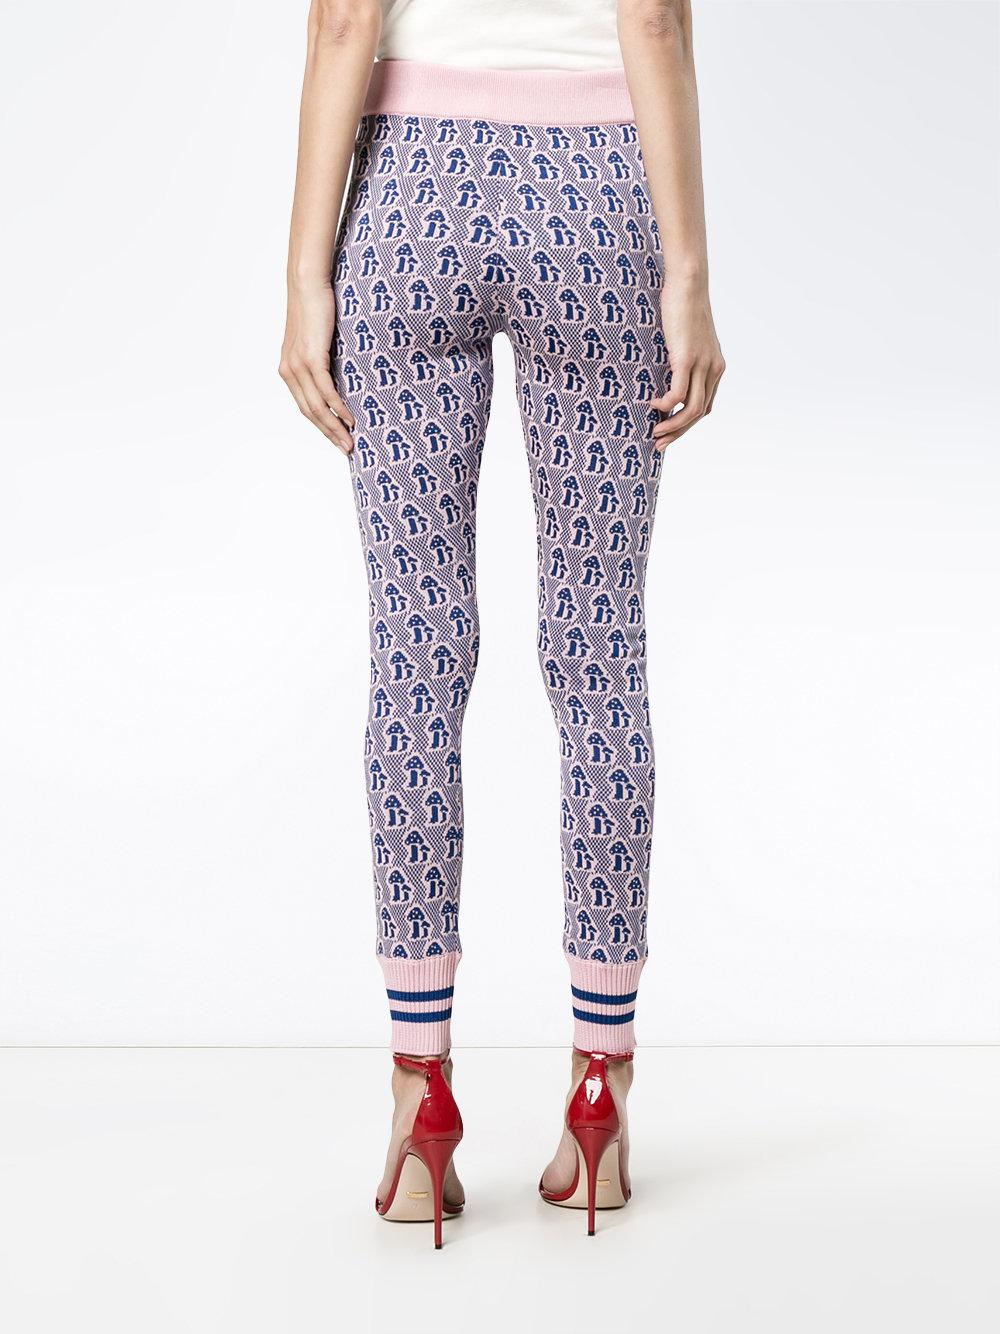 Lyst - Gucci Mushrooms Jacquard Knit Leggings